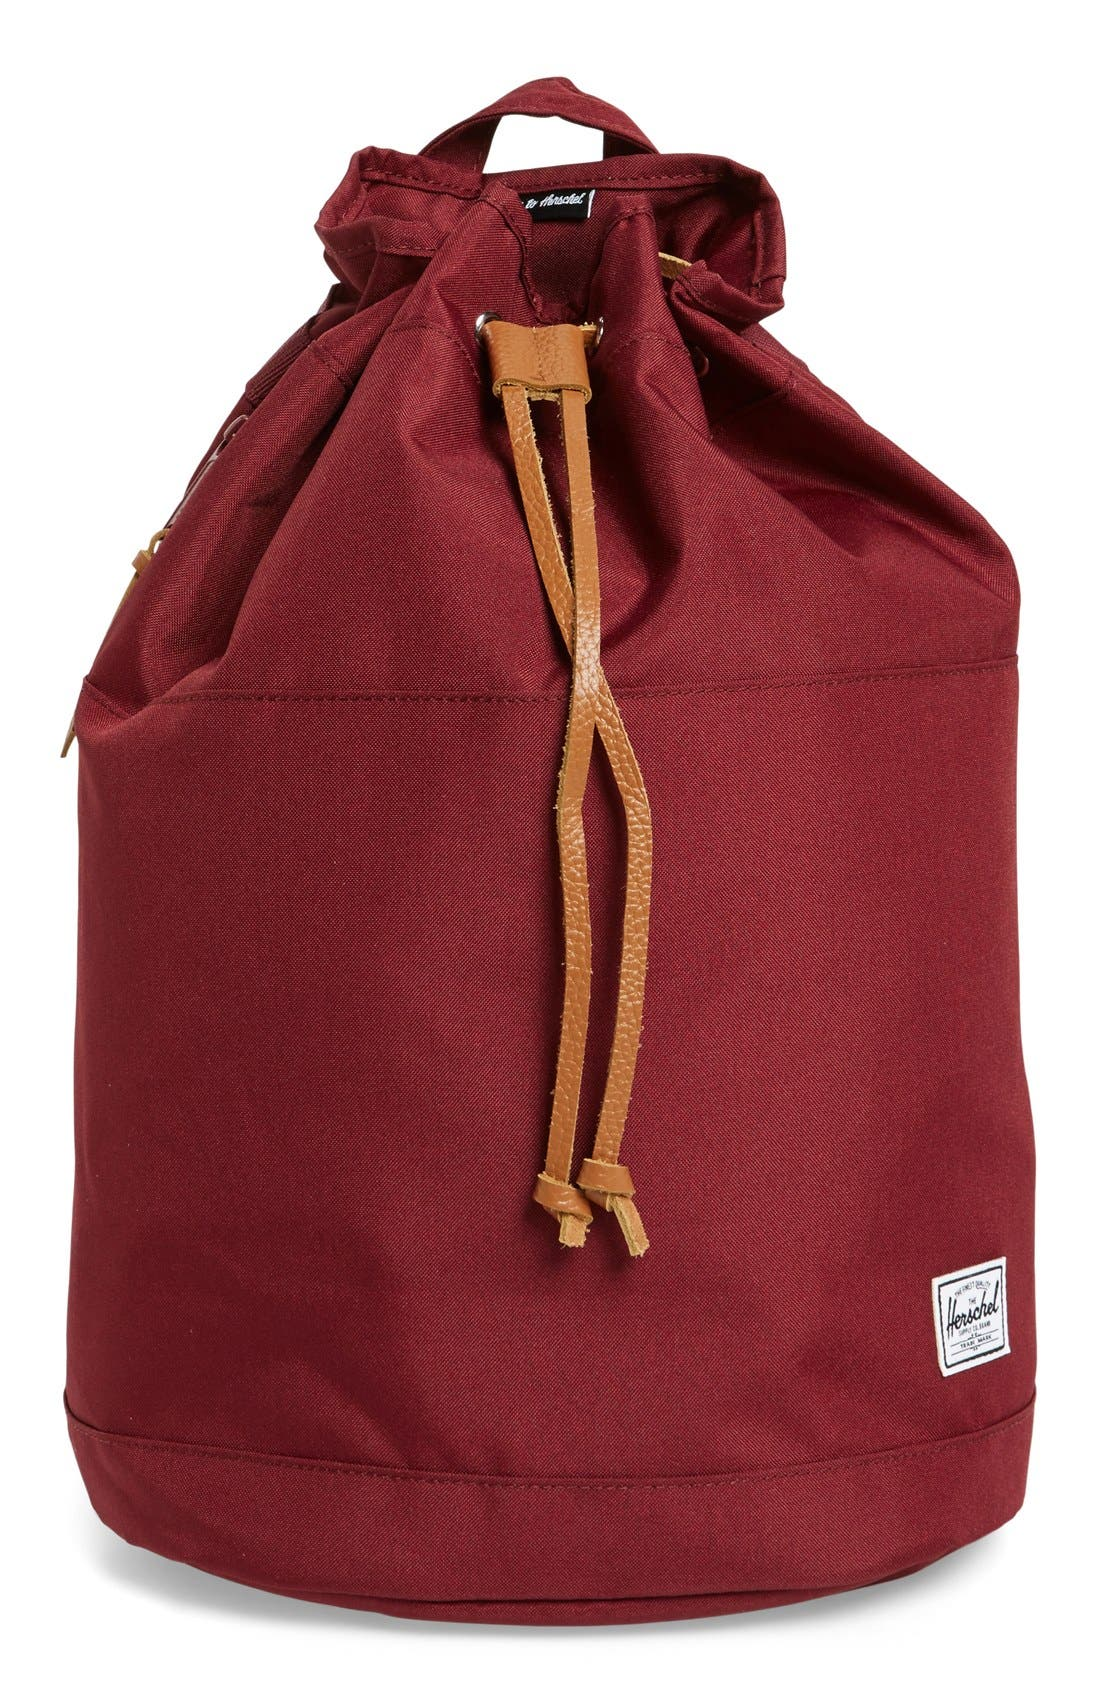 Alternate Image 1 Selected - Herschel Supply Co. 'Hanson' Canvas Backpack